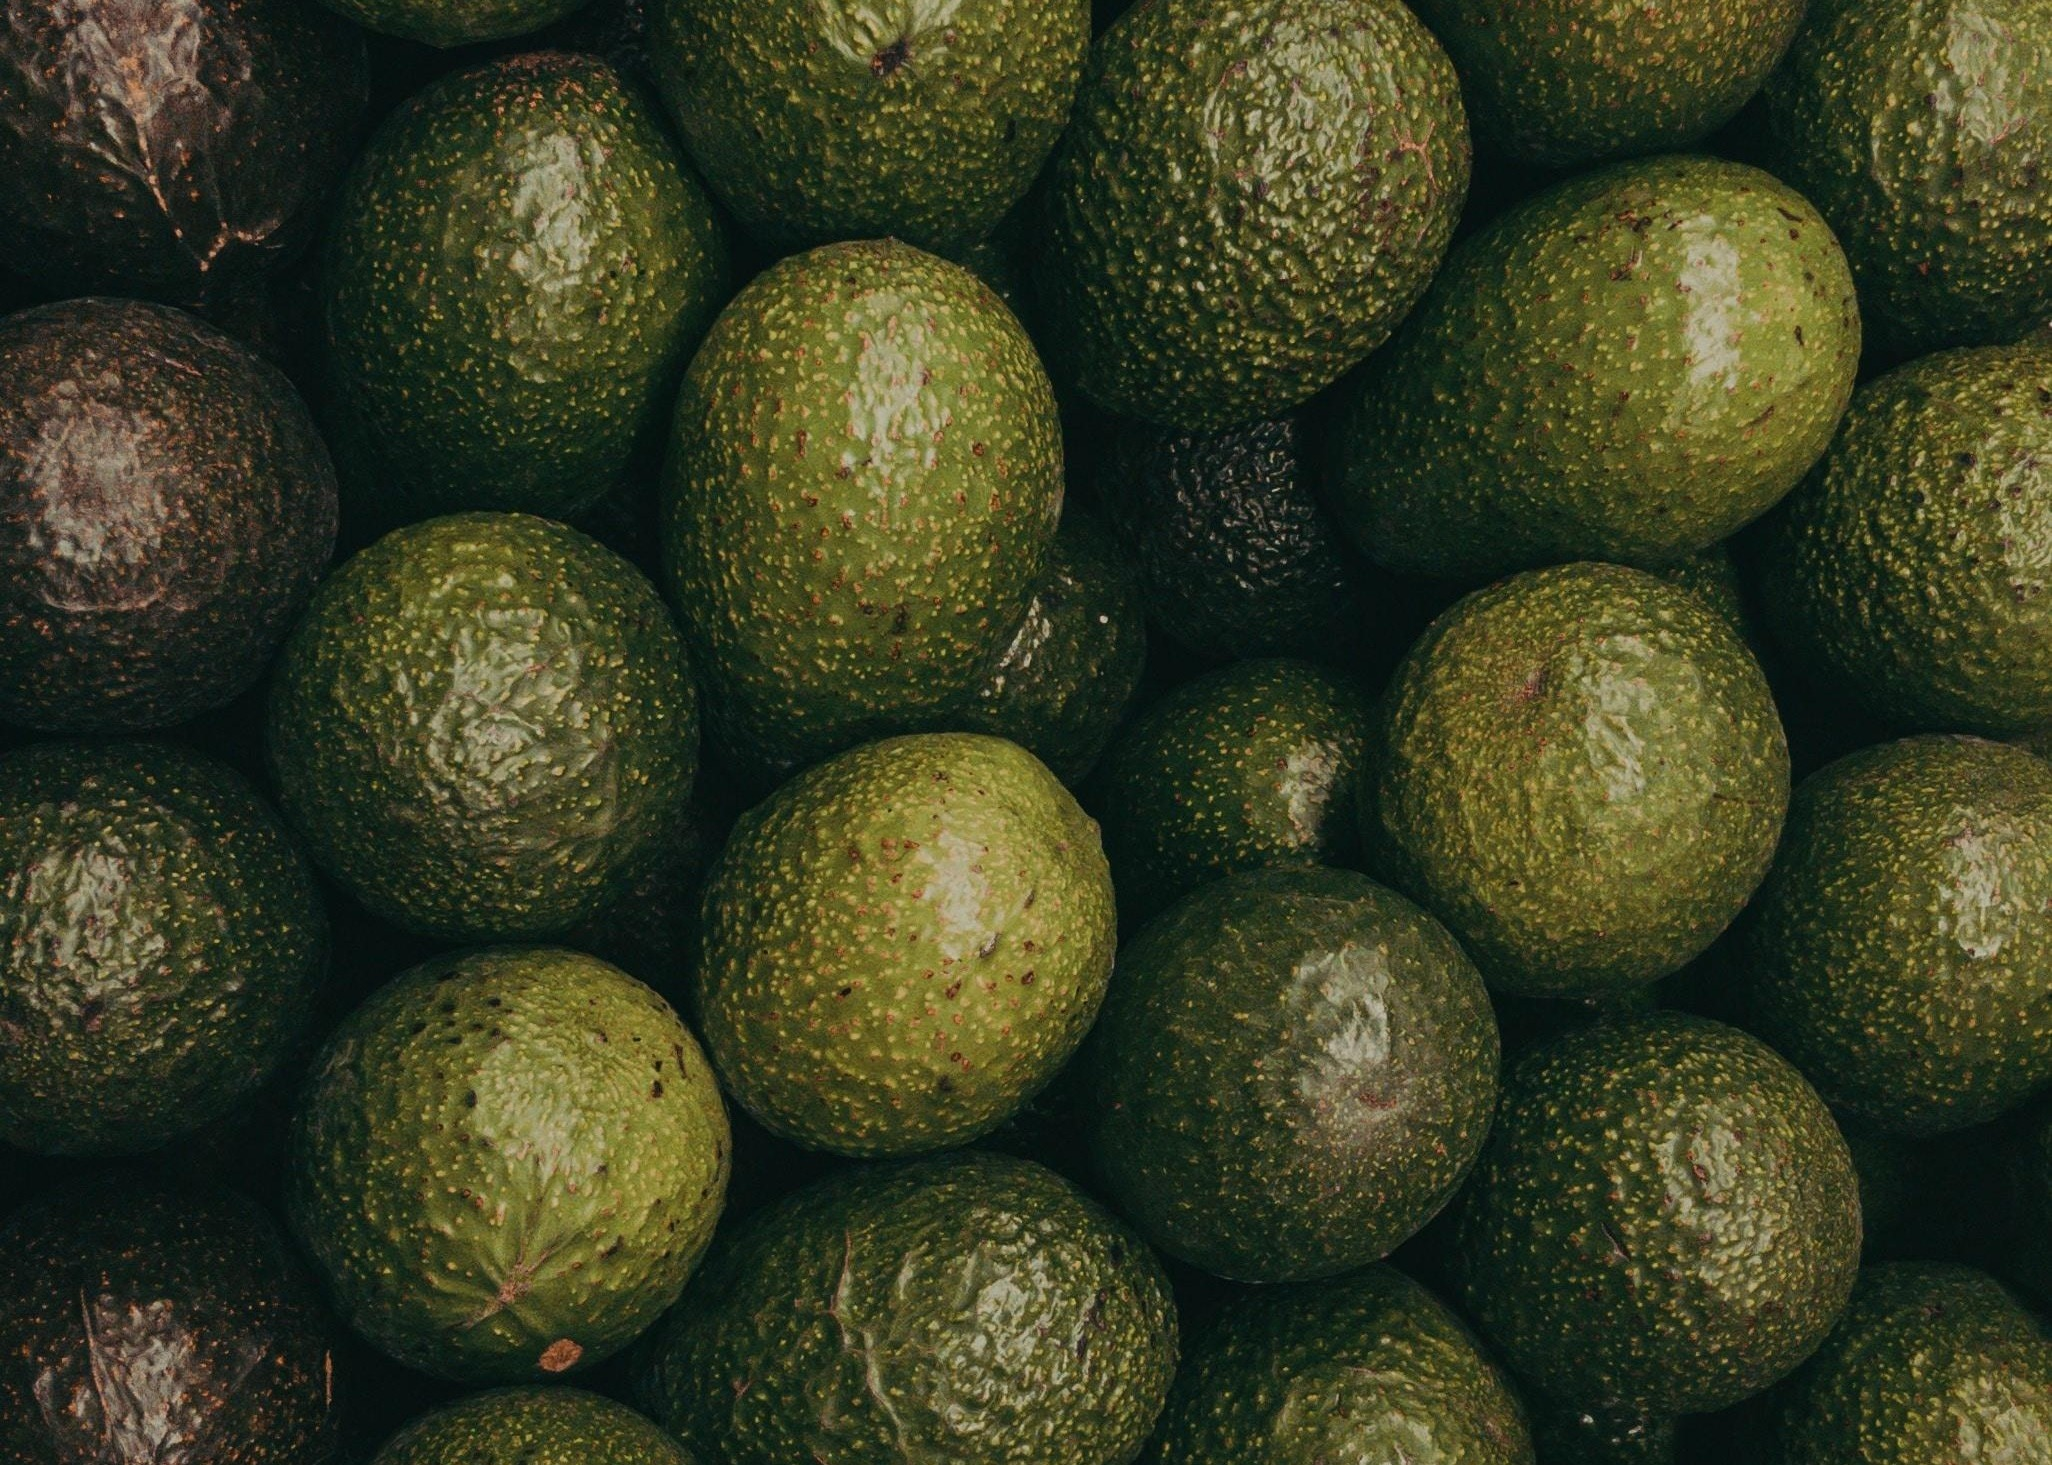 Avocado Finance: The Millennial Approach to Retirement Thumbnail